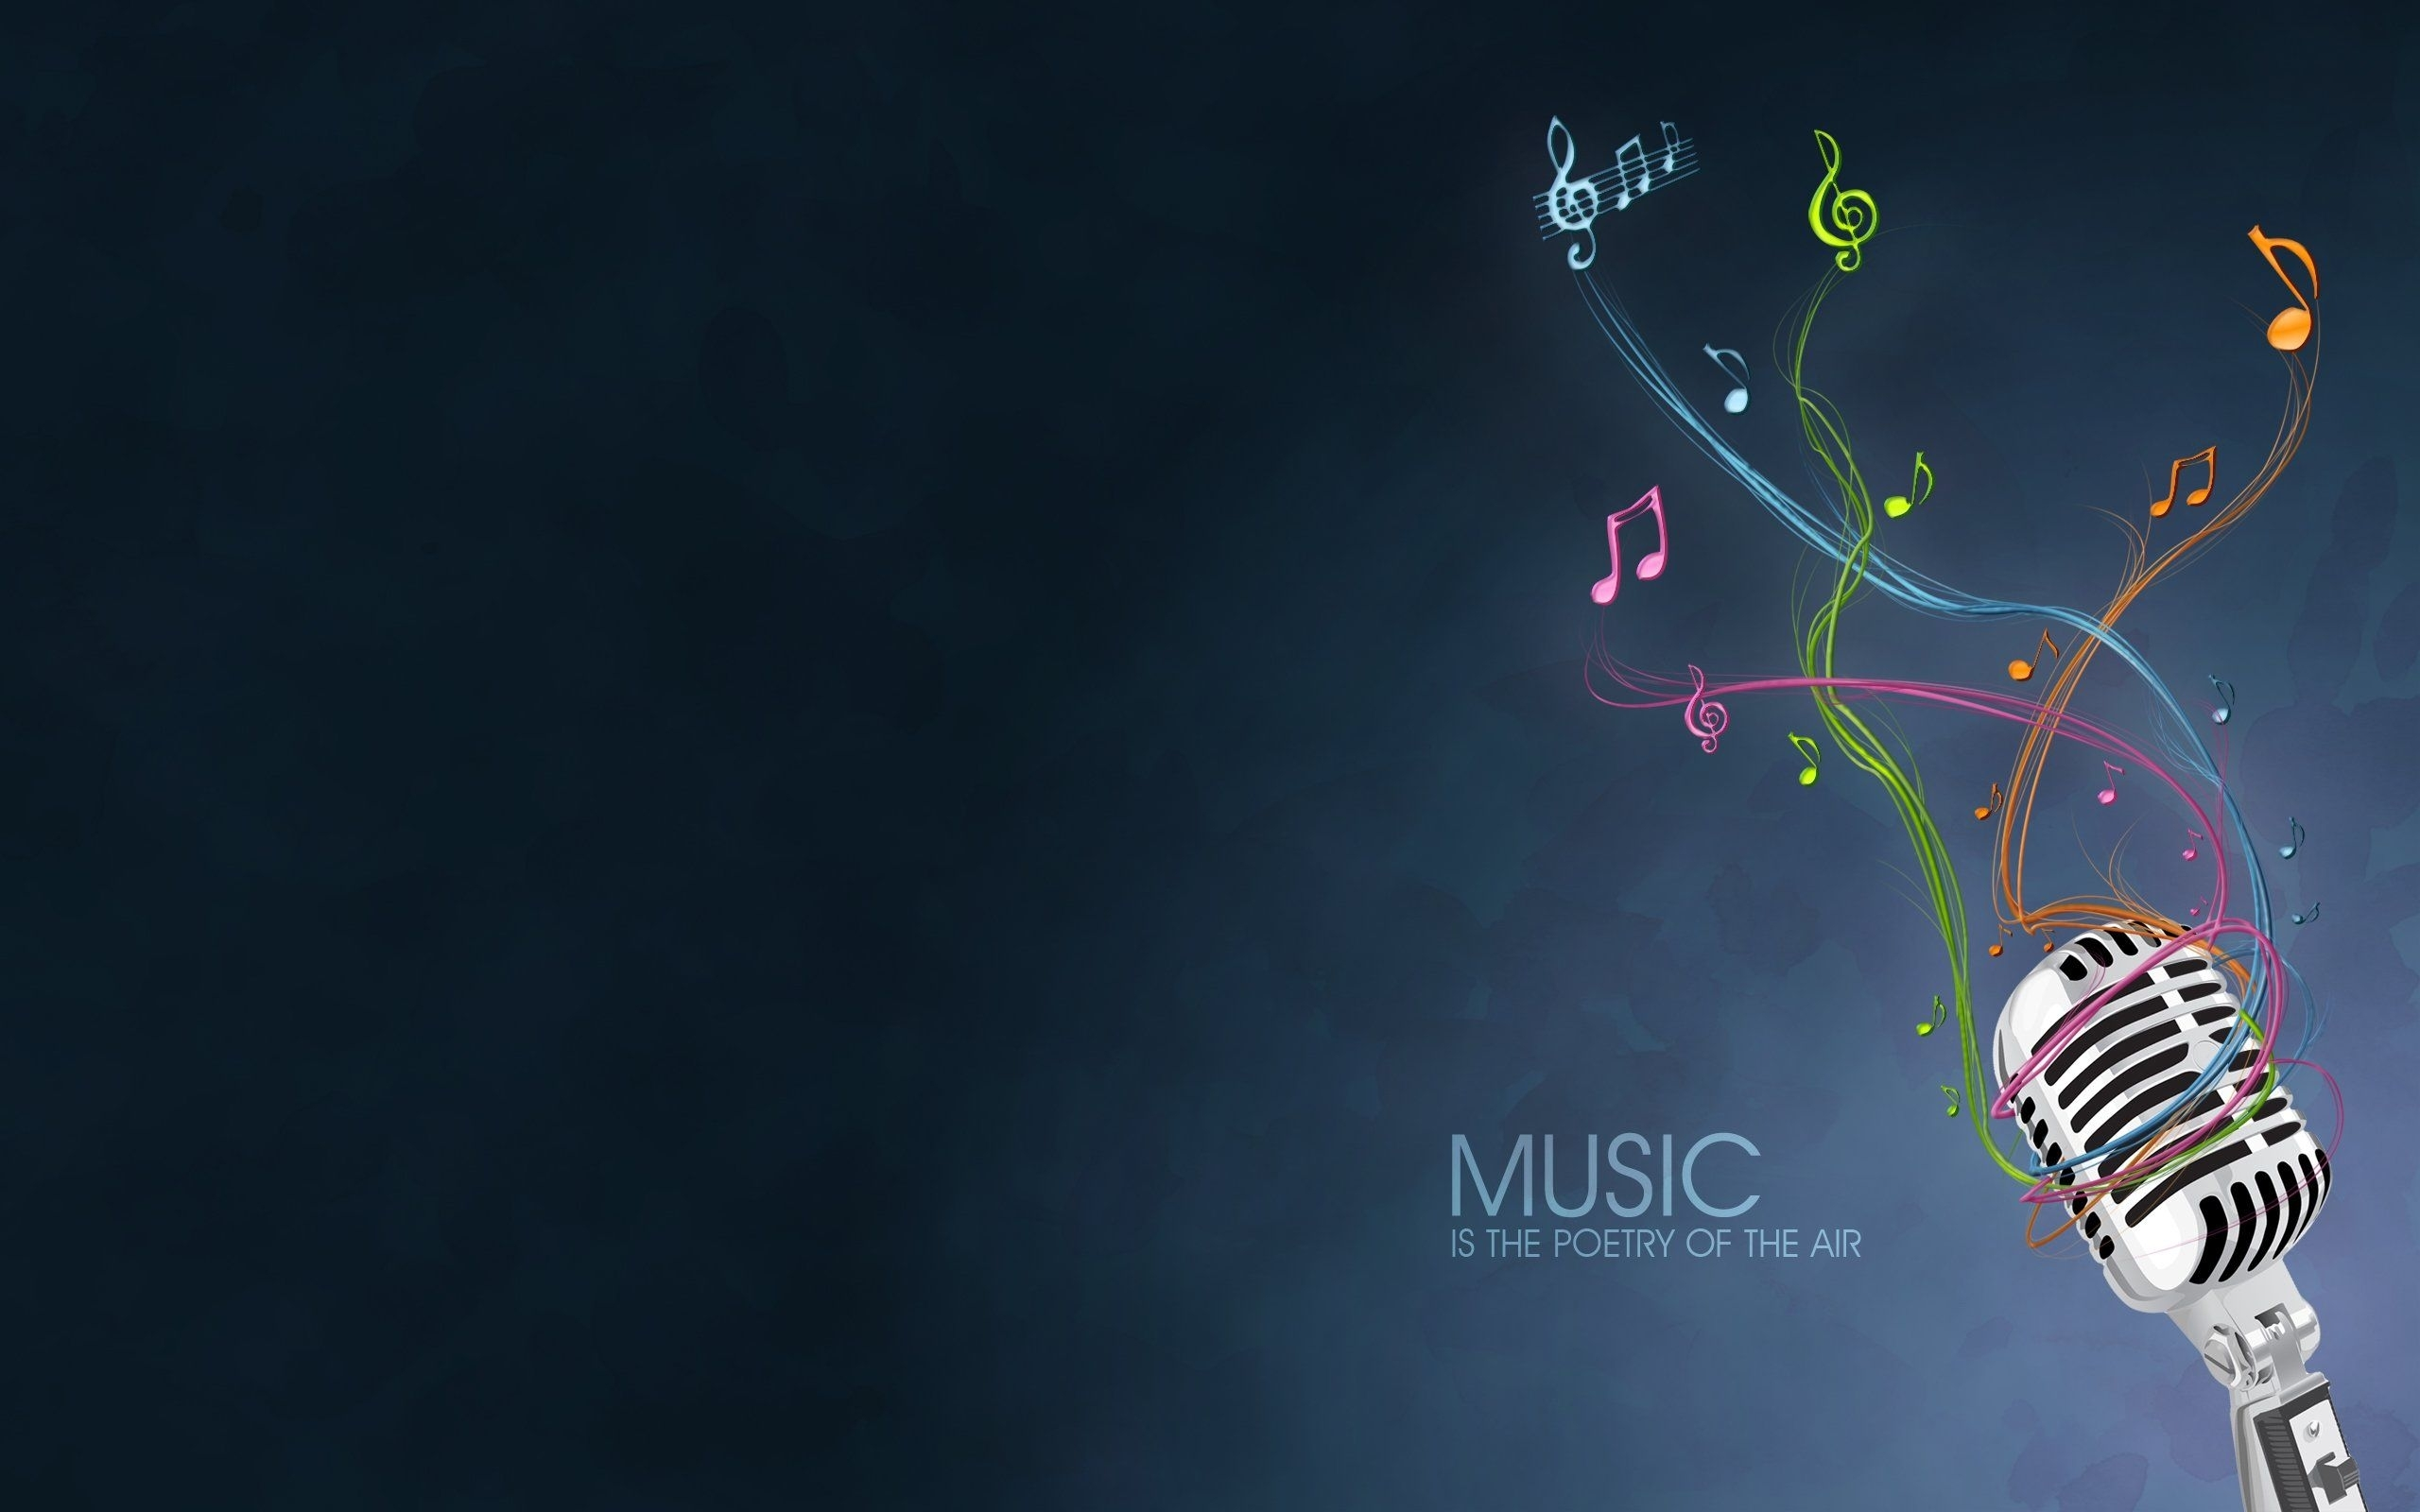 80 free music wallpapers hd for pc: be musical! | music wallpaper